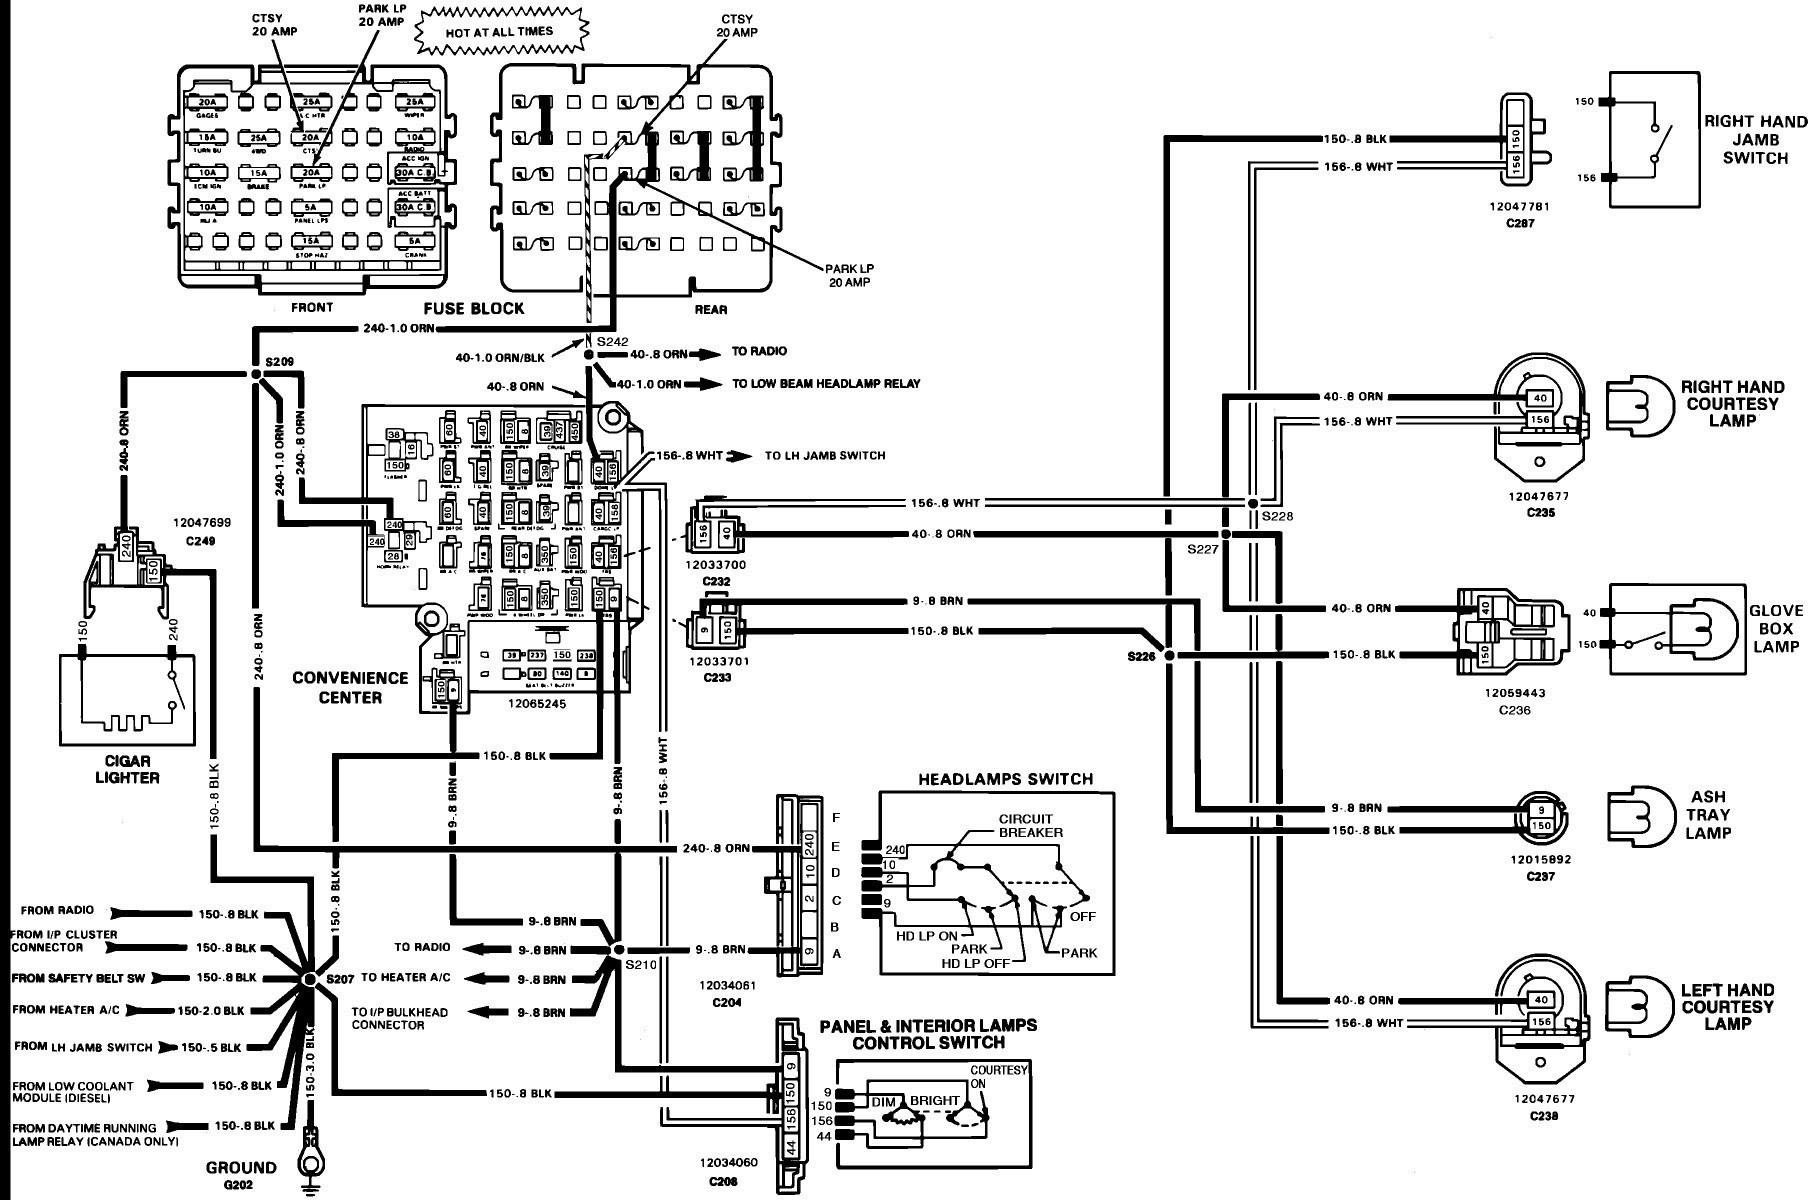 Chevy S10 Tail Light Wiring Diagram 95 S10 Lights Wiring Of Chevy S10 Tail Light Wiring Diagram 92 S10 Tail Light Wiring Diagram Schema Wiring Diagram